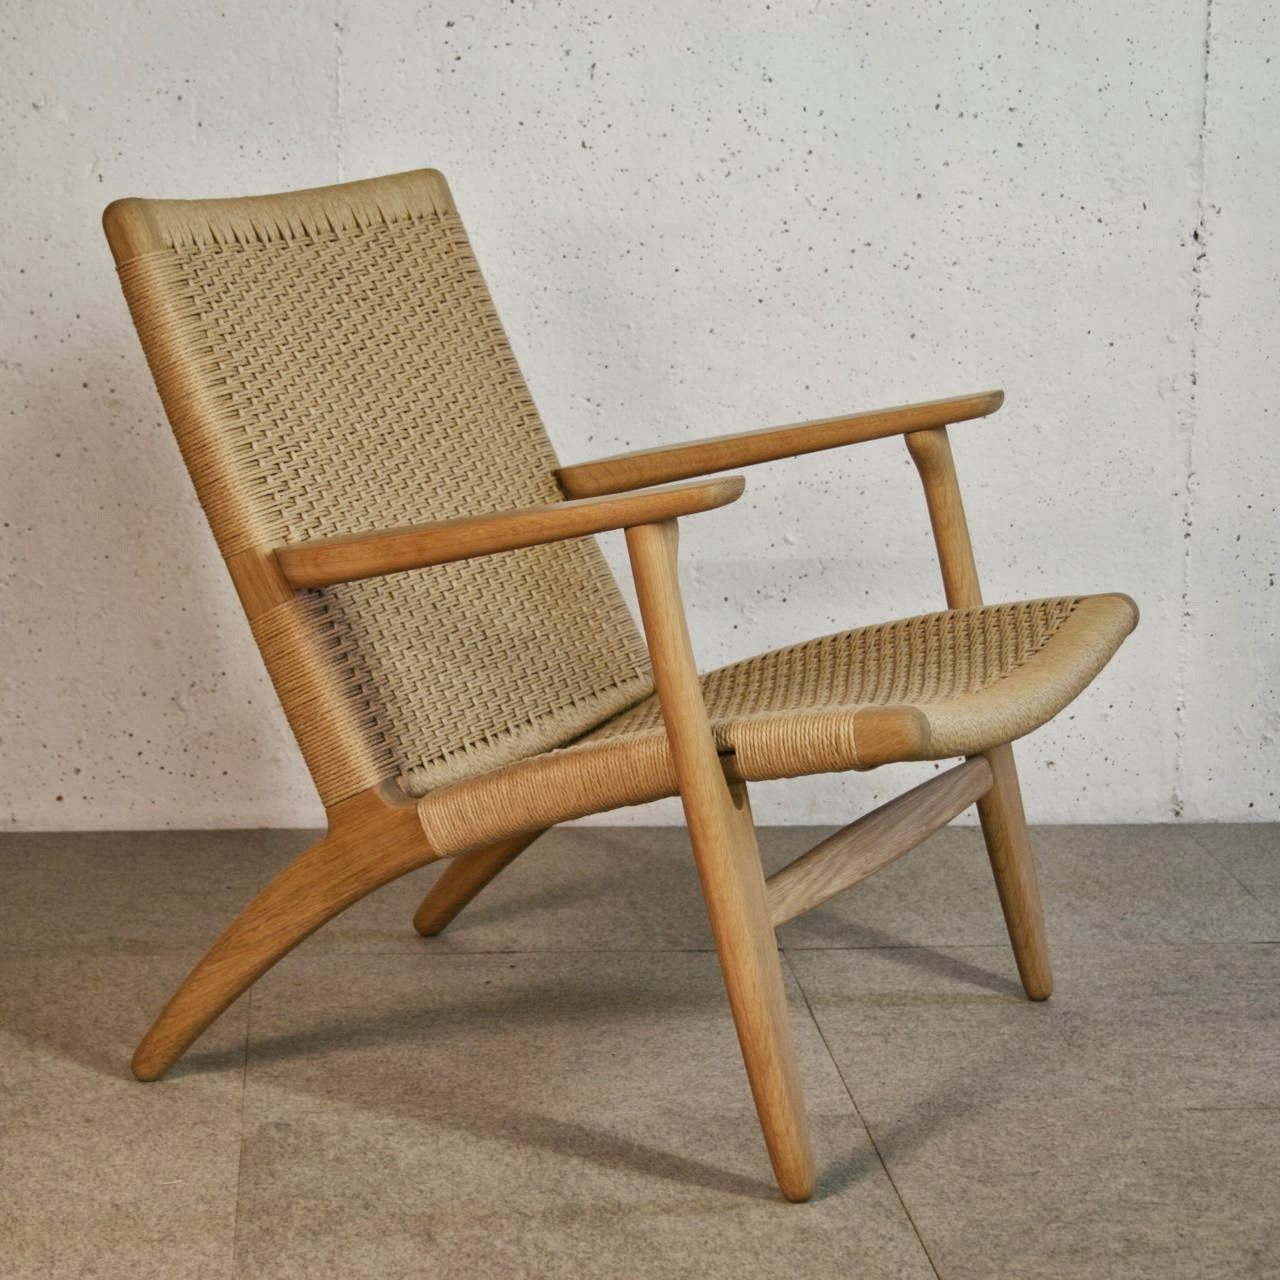 Request Hans Wegner Chair Plans Or Build Guides Woodworking